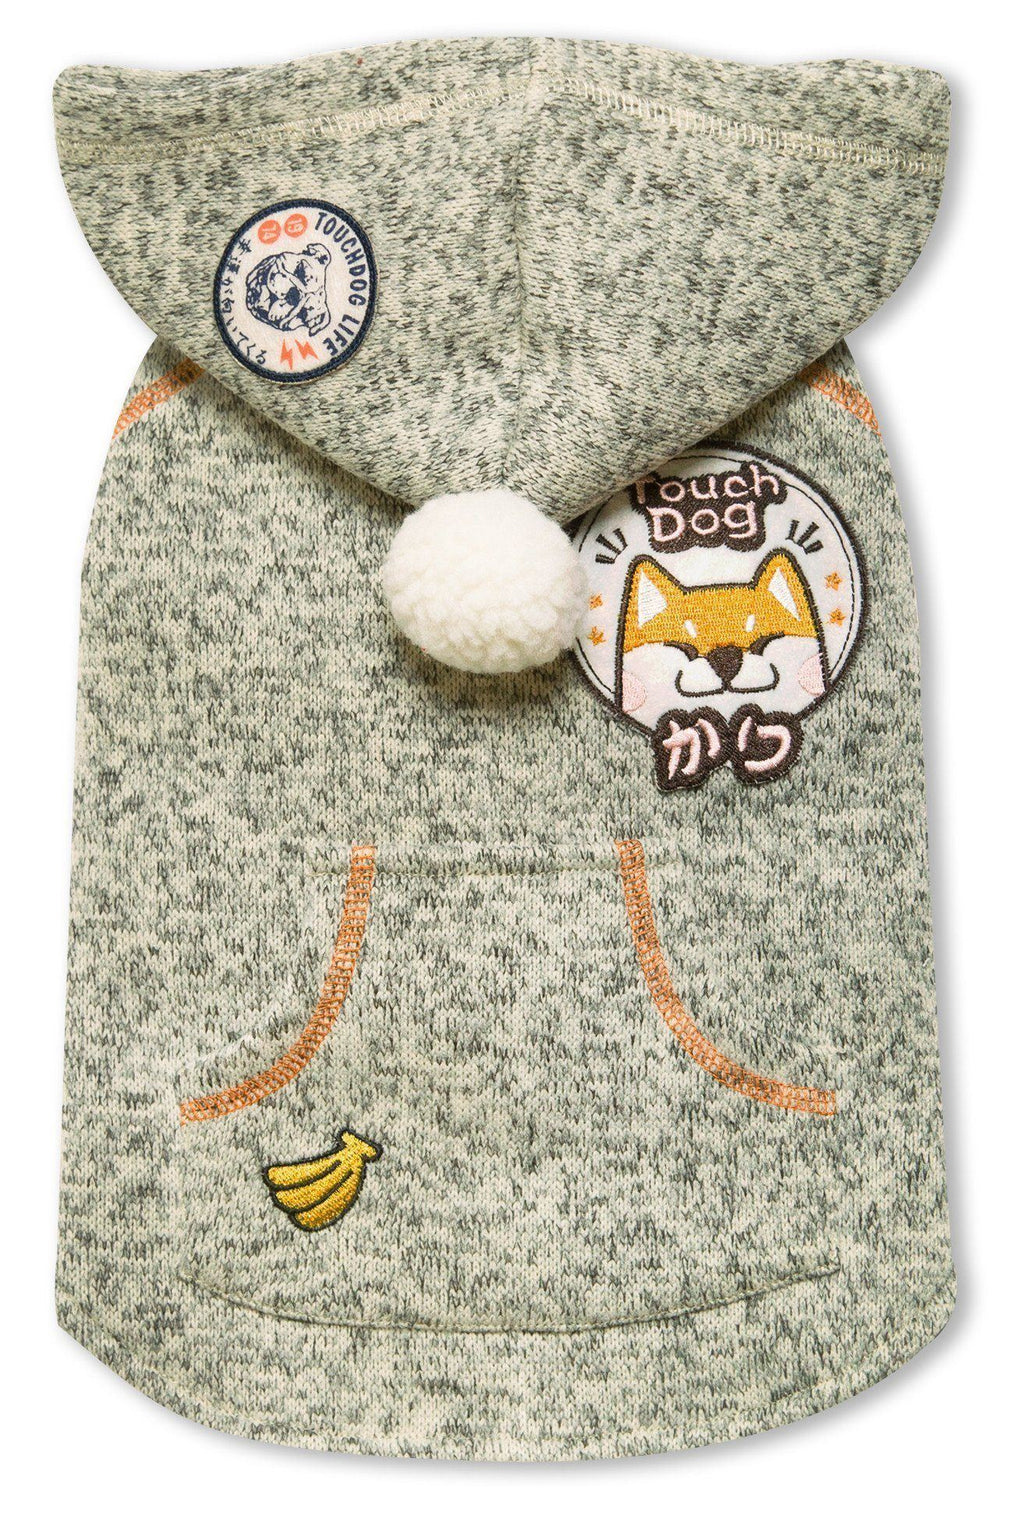 Touchdog ® Hippie Embellished Sleeveless Pompom Hooded Fashion Dog Sweater X-Small Oliv...